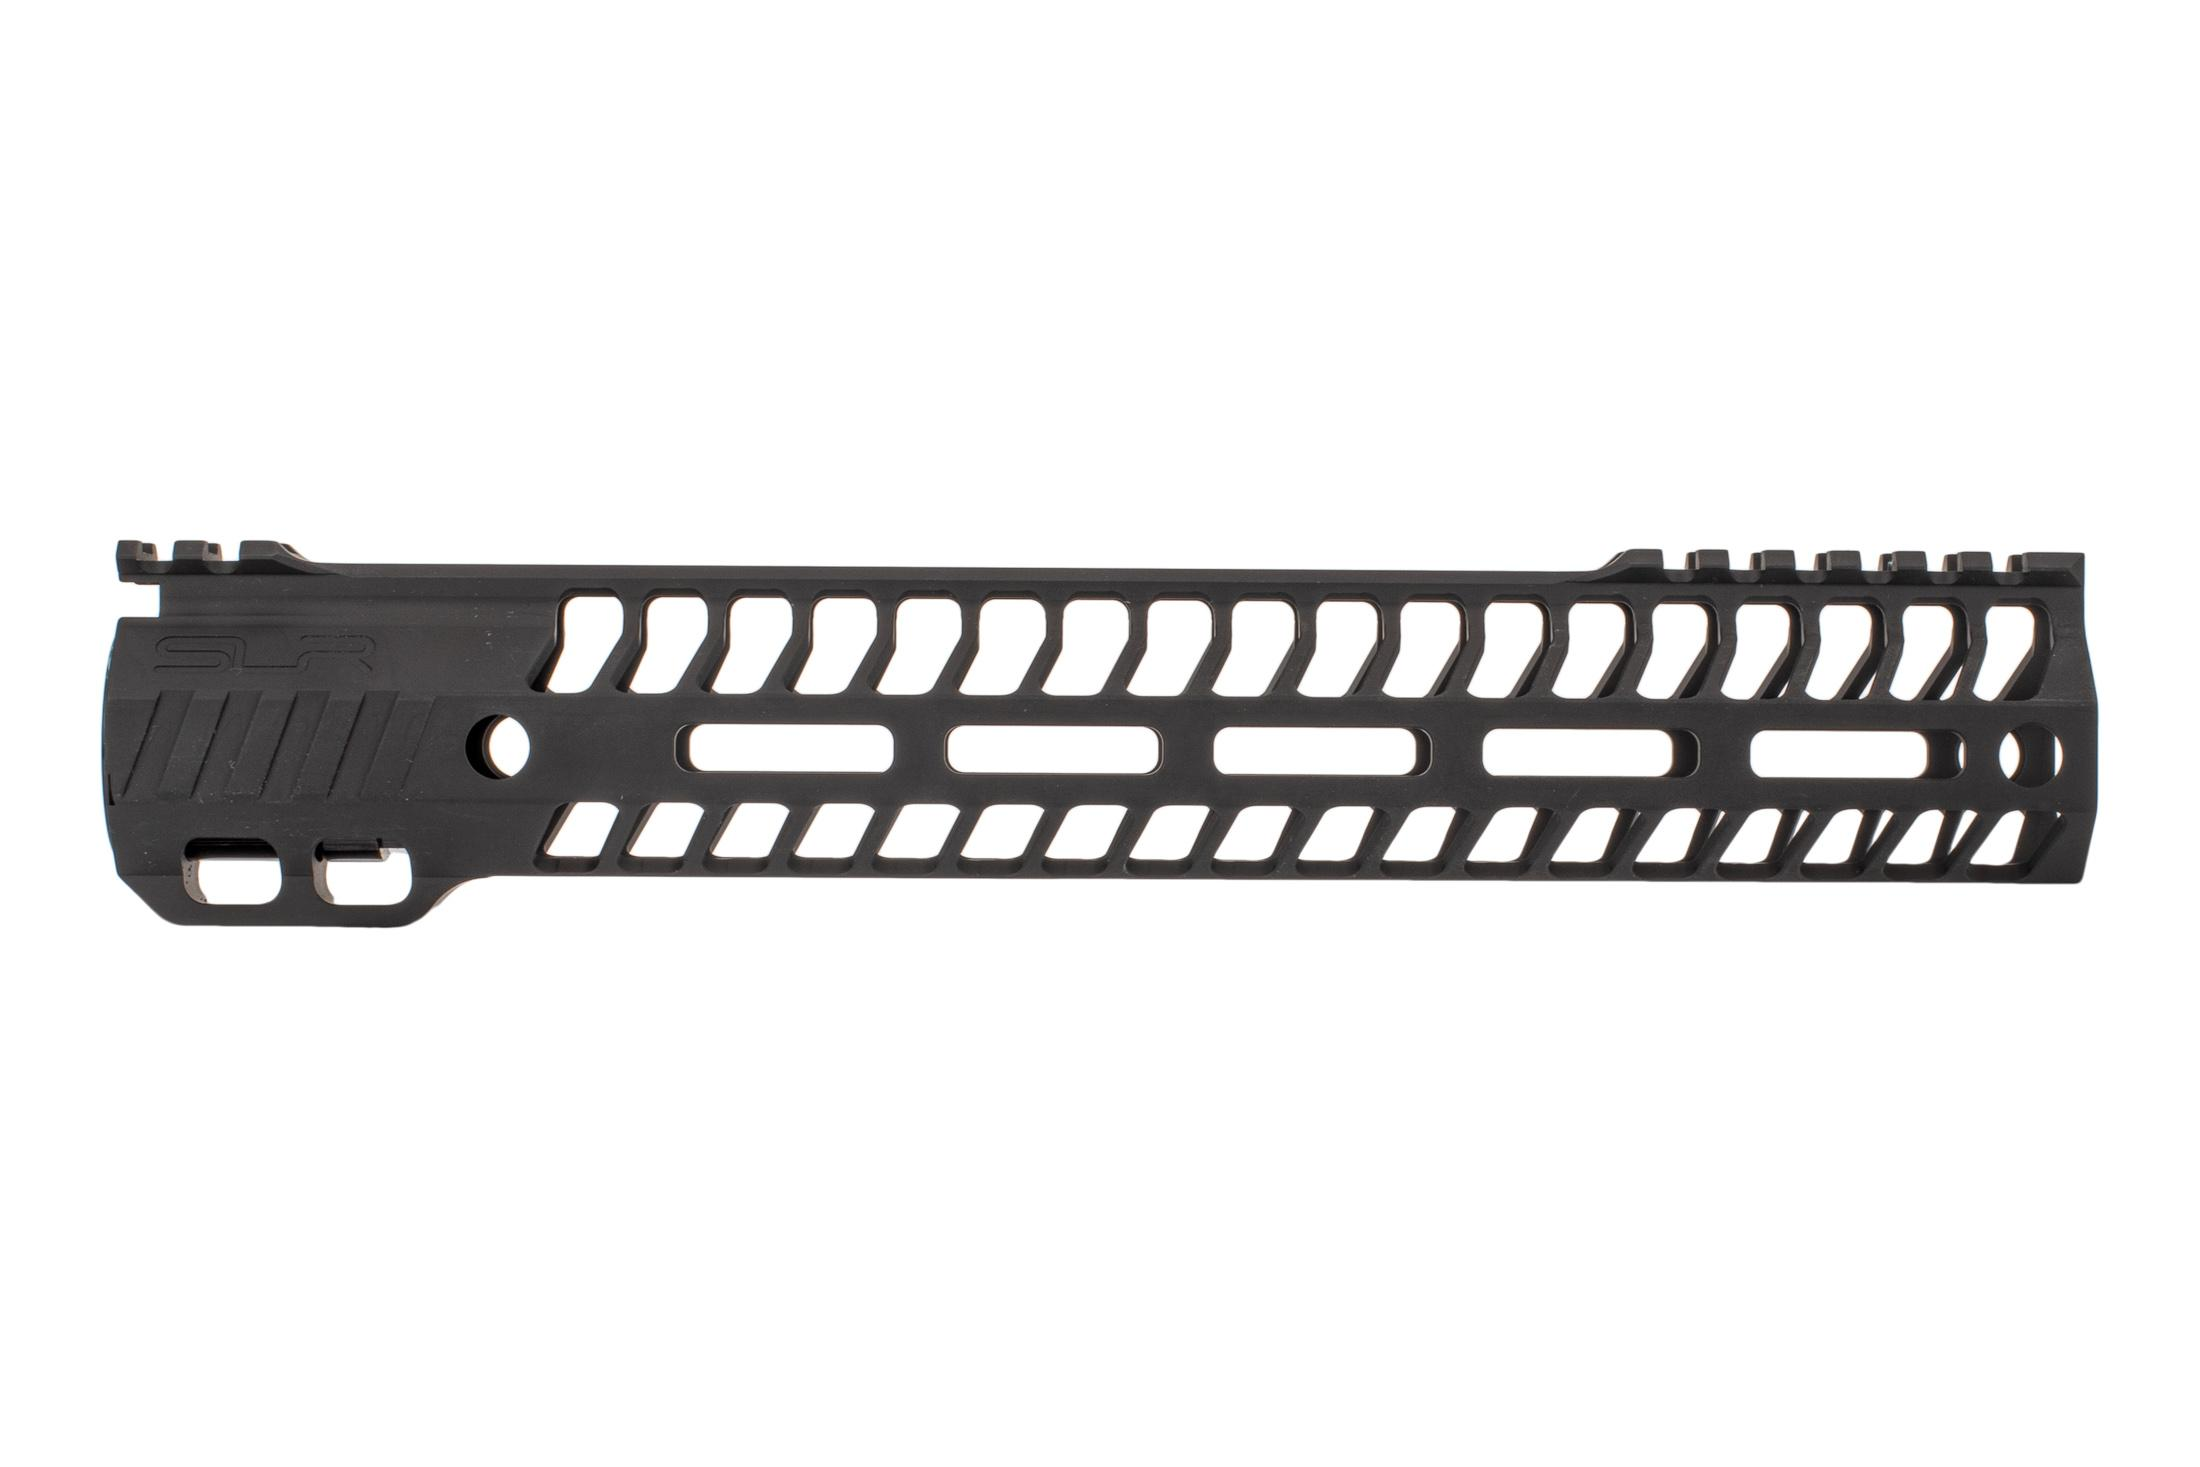 SLR Rifleworks 11.7 HELIX AR-15 handguard with interrupted top rail features M-LOK on four sides and a black finish